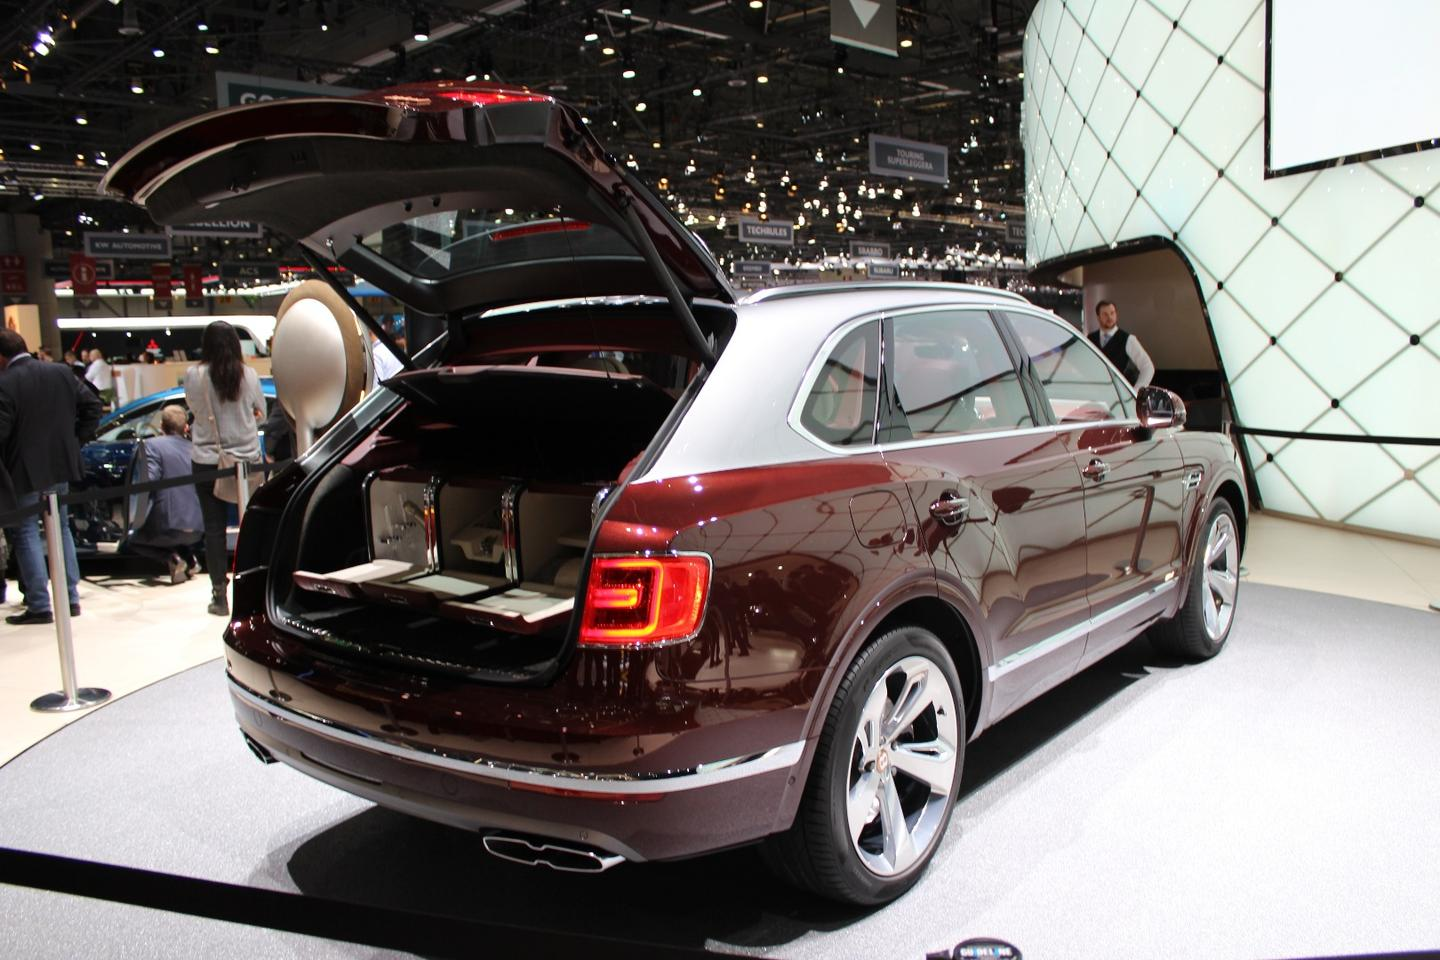 There's no word yet on pricing, but Bentley does say the Bentayga Hybrid will become available to order in selected markets in the second half of 2018